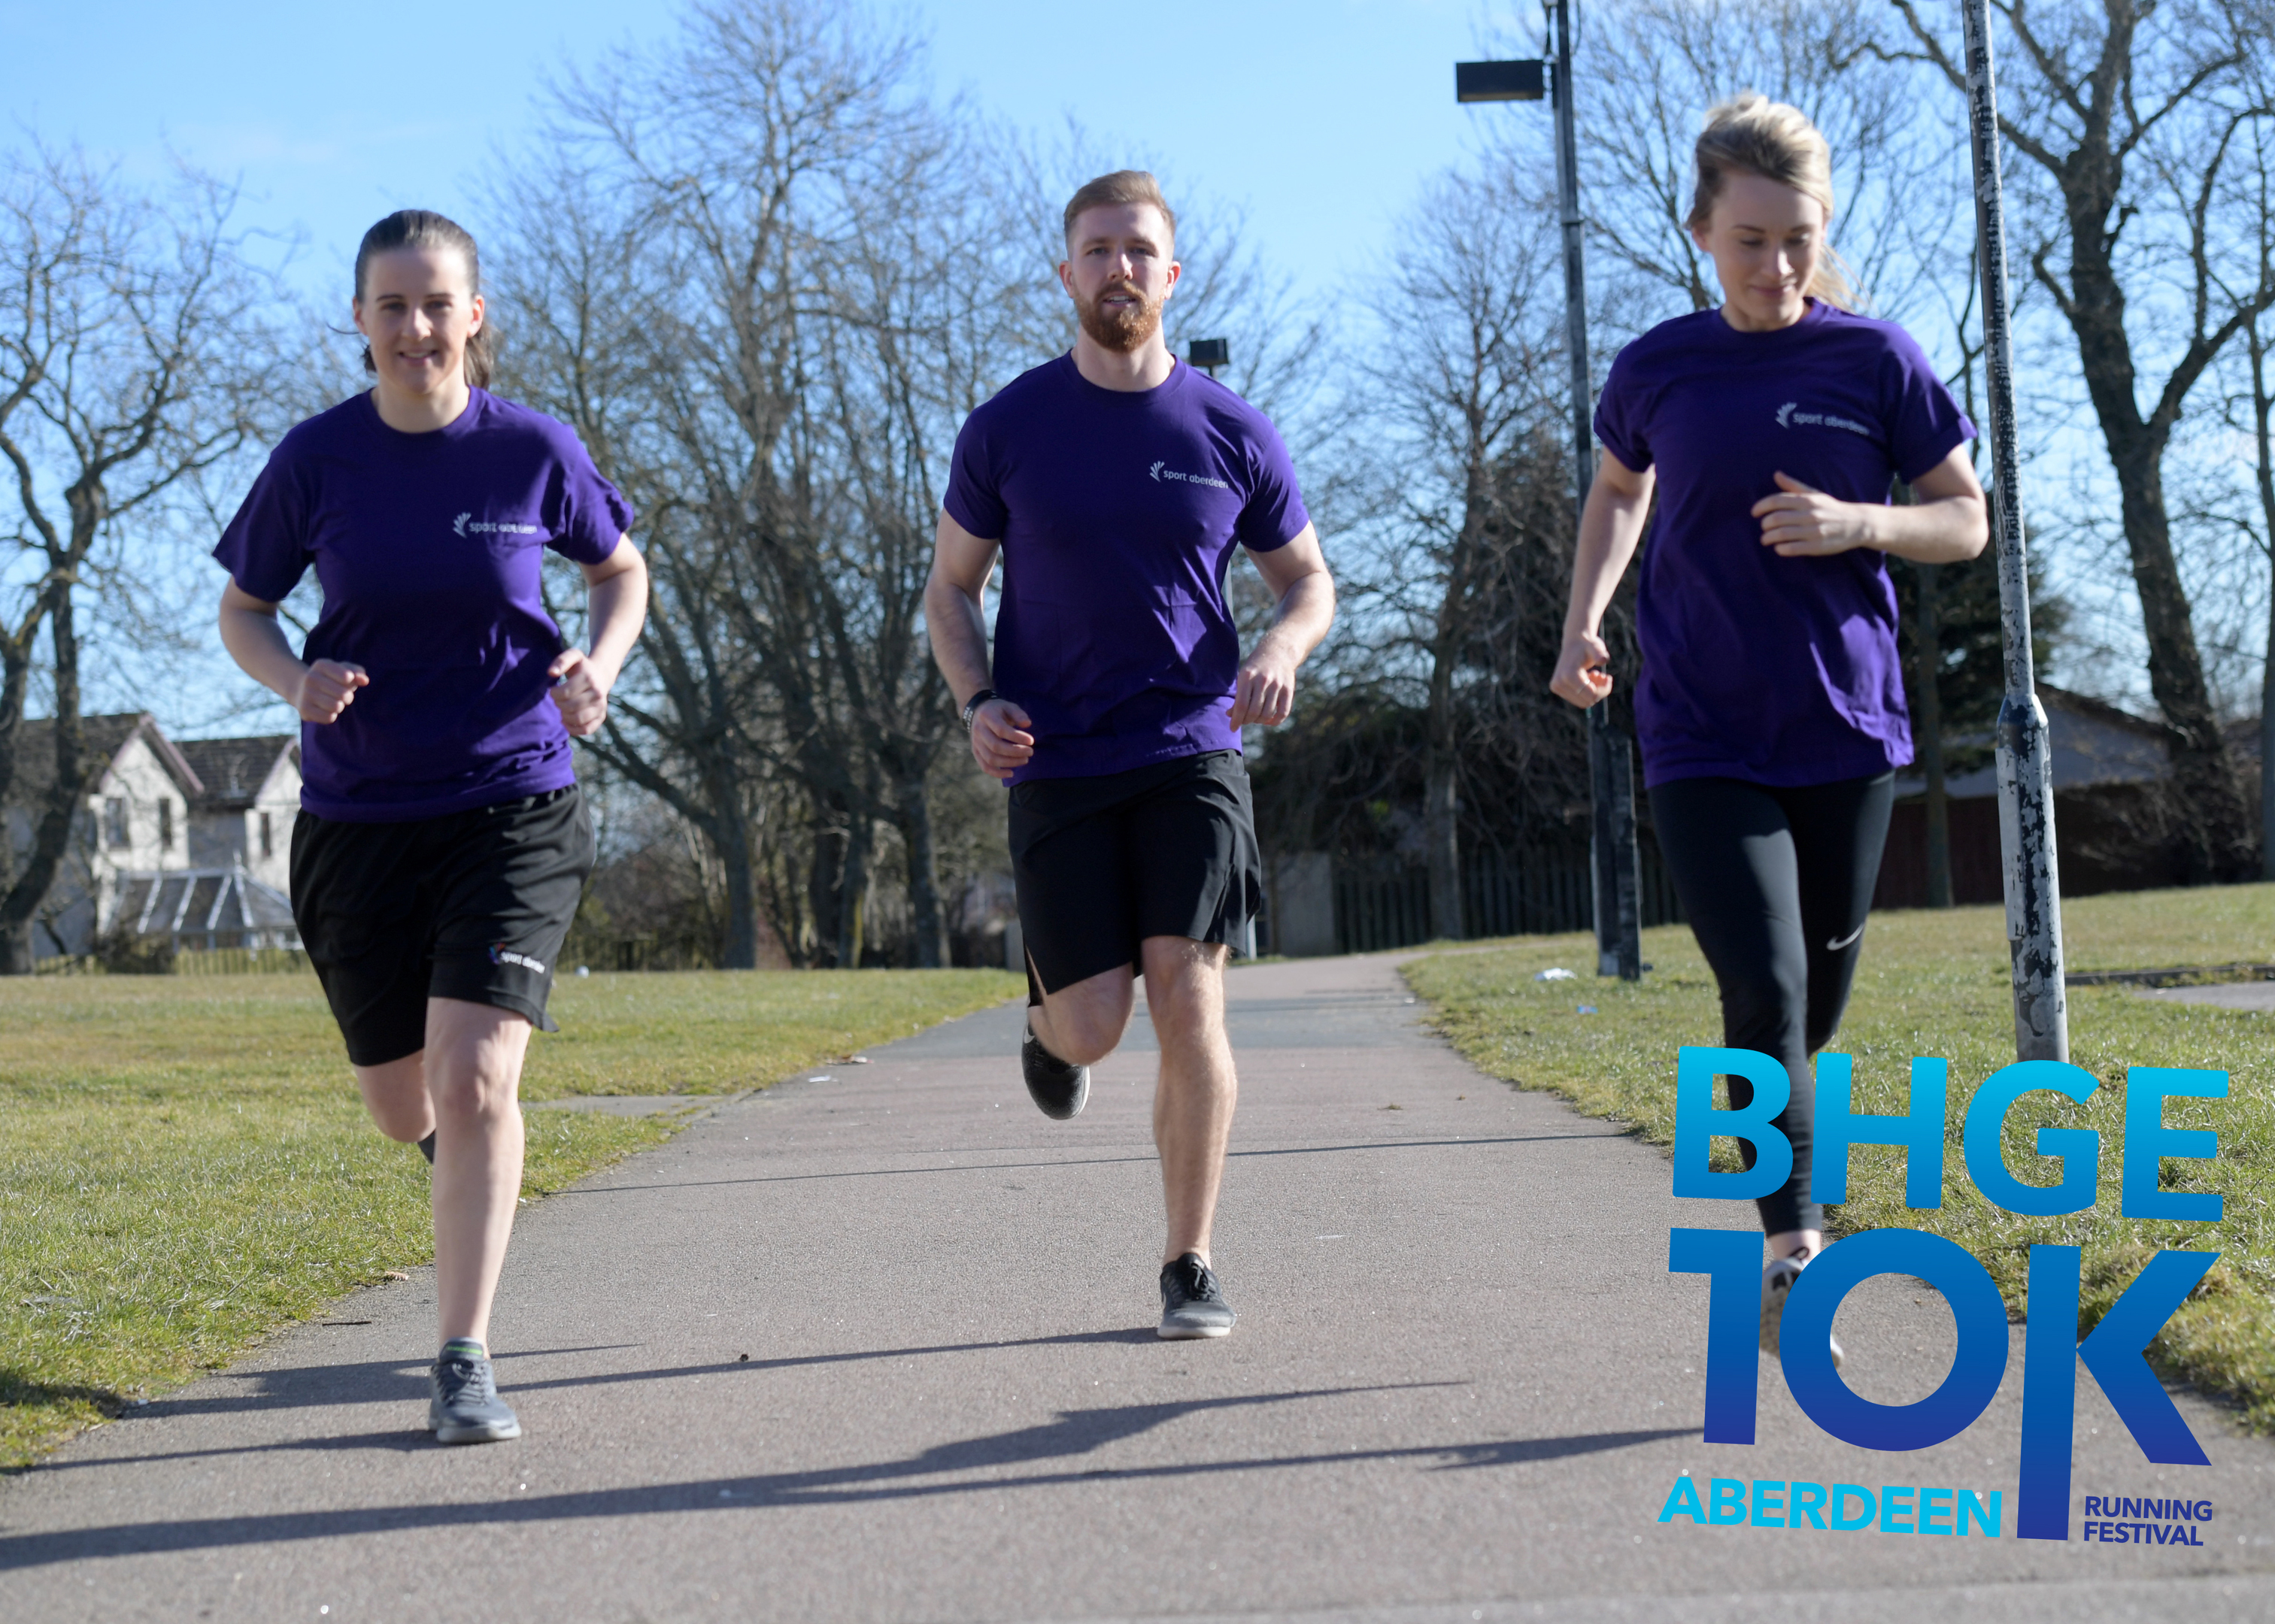 From left, Sport Aberdeen health and wellness team Briony Stewart, Michael Watson and Ashleigh Smith. Picture by Kath Flannery